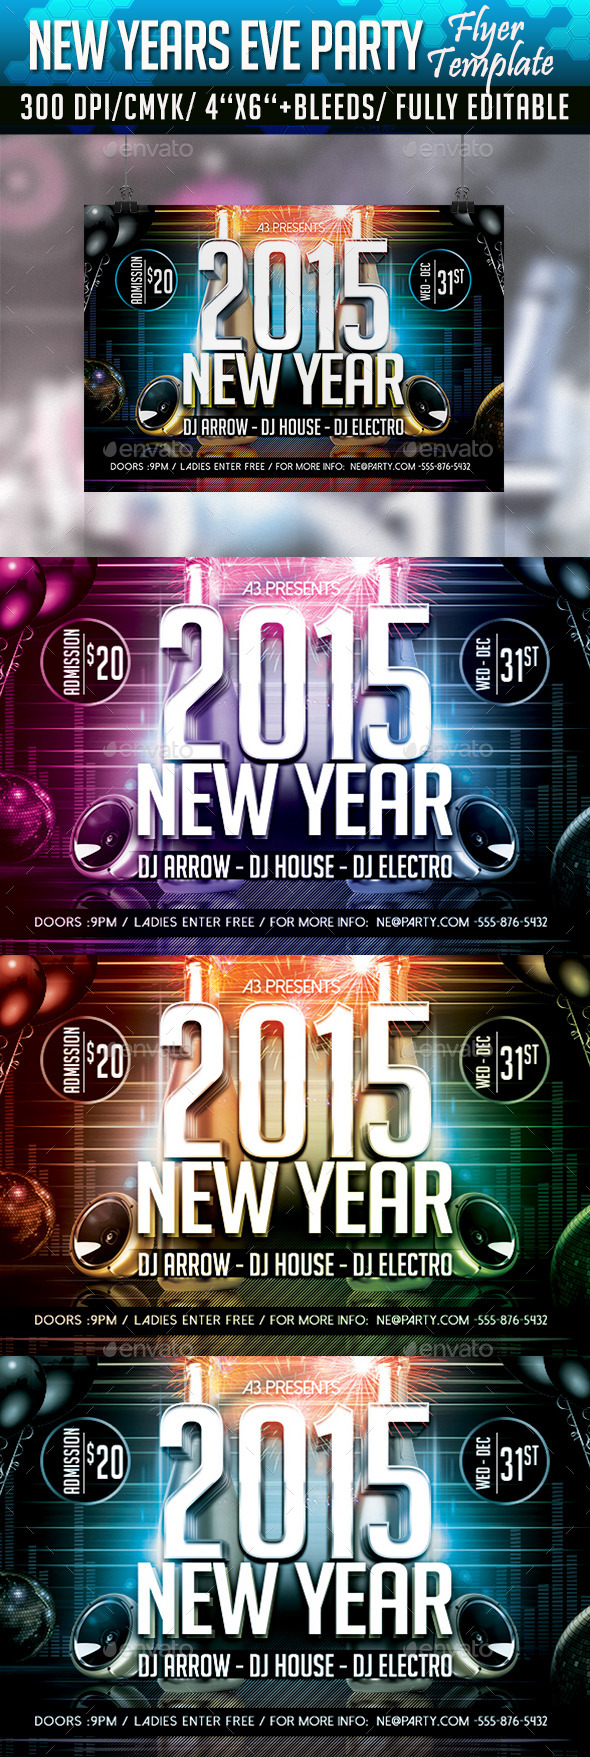 New Year Eve Party Flyer 2 - Clubs & Parties Events